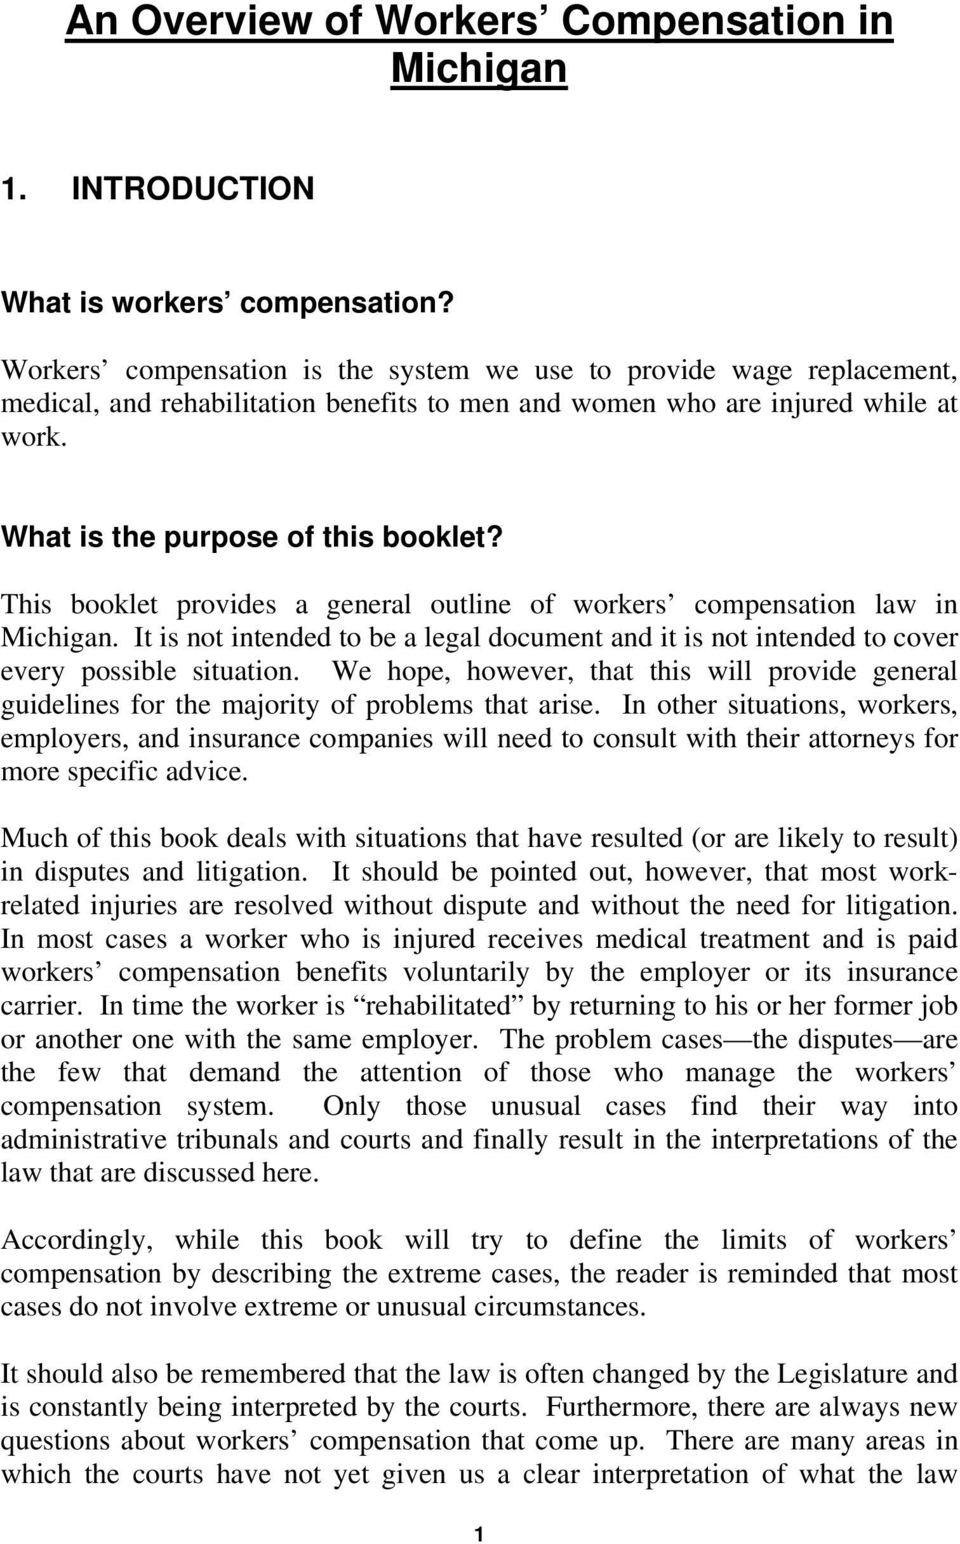 This booklet provides a general outline of workers compensation law in Michigan. It is not intended to be a legal document and it is not intended to cover every possible situation.